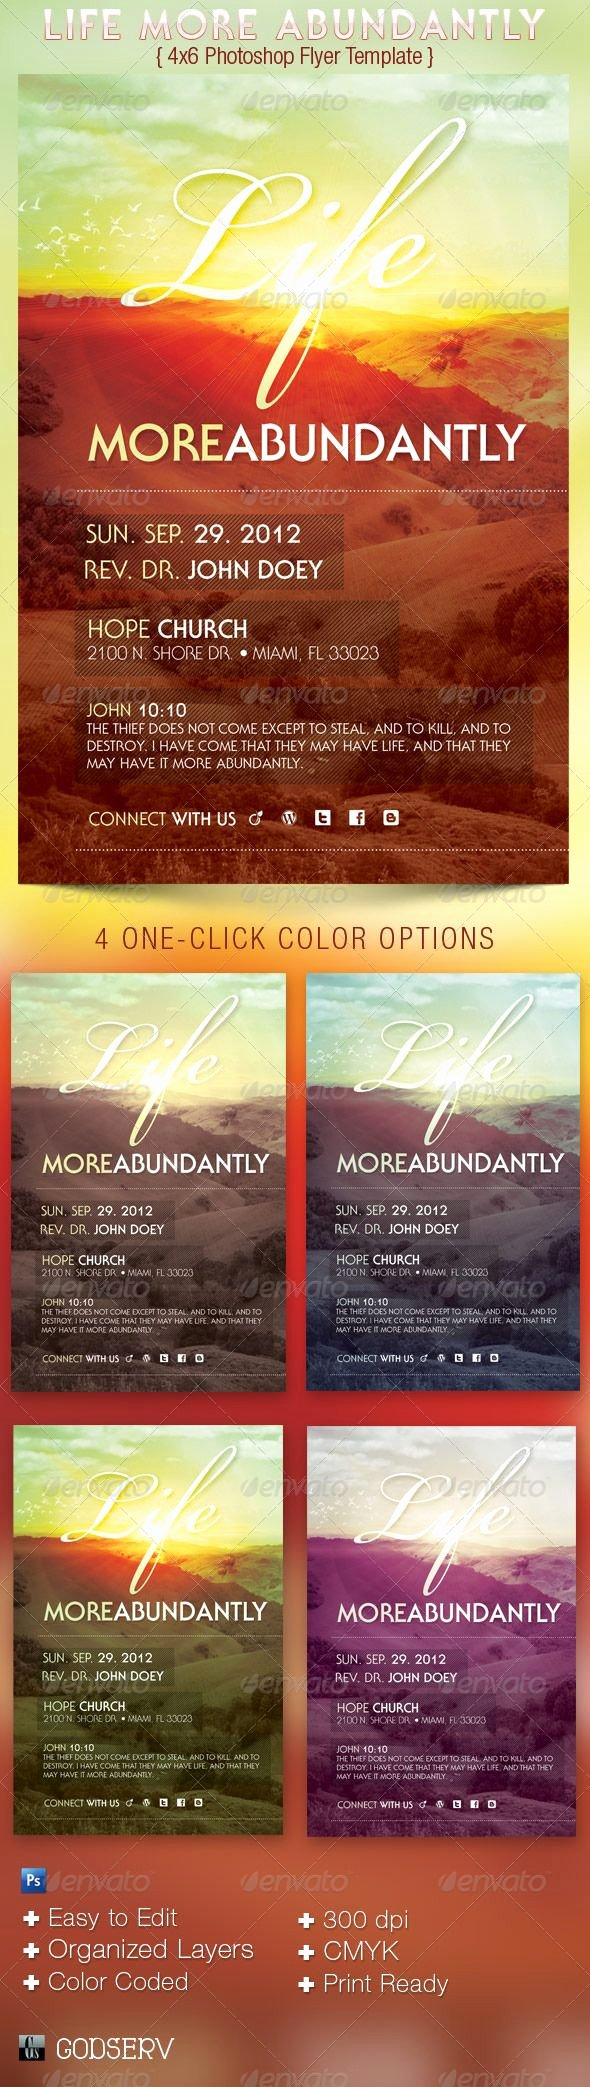 4x6 Flyer Template Beautiful 1000 Images About Church Print Samples On Pinterest